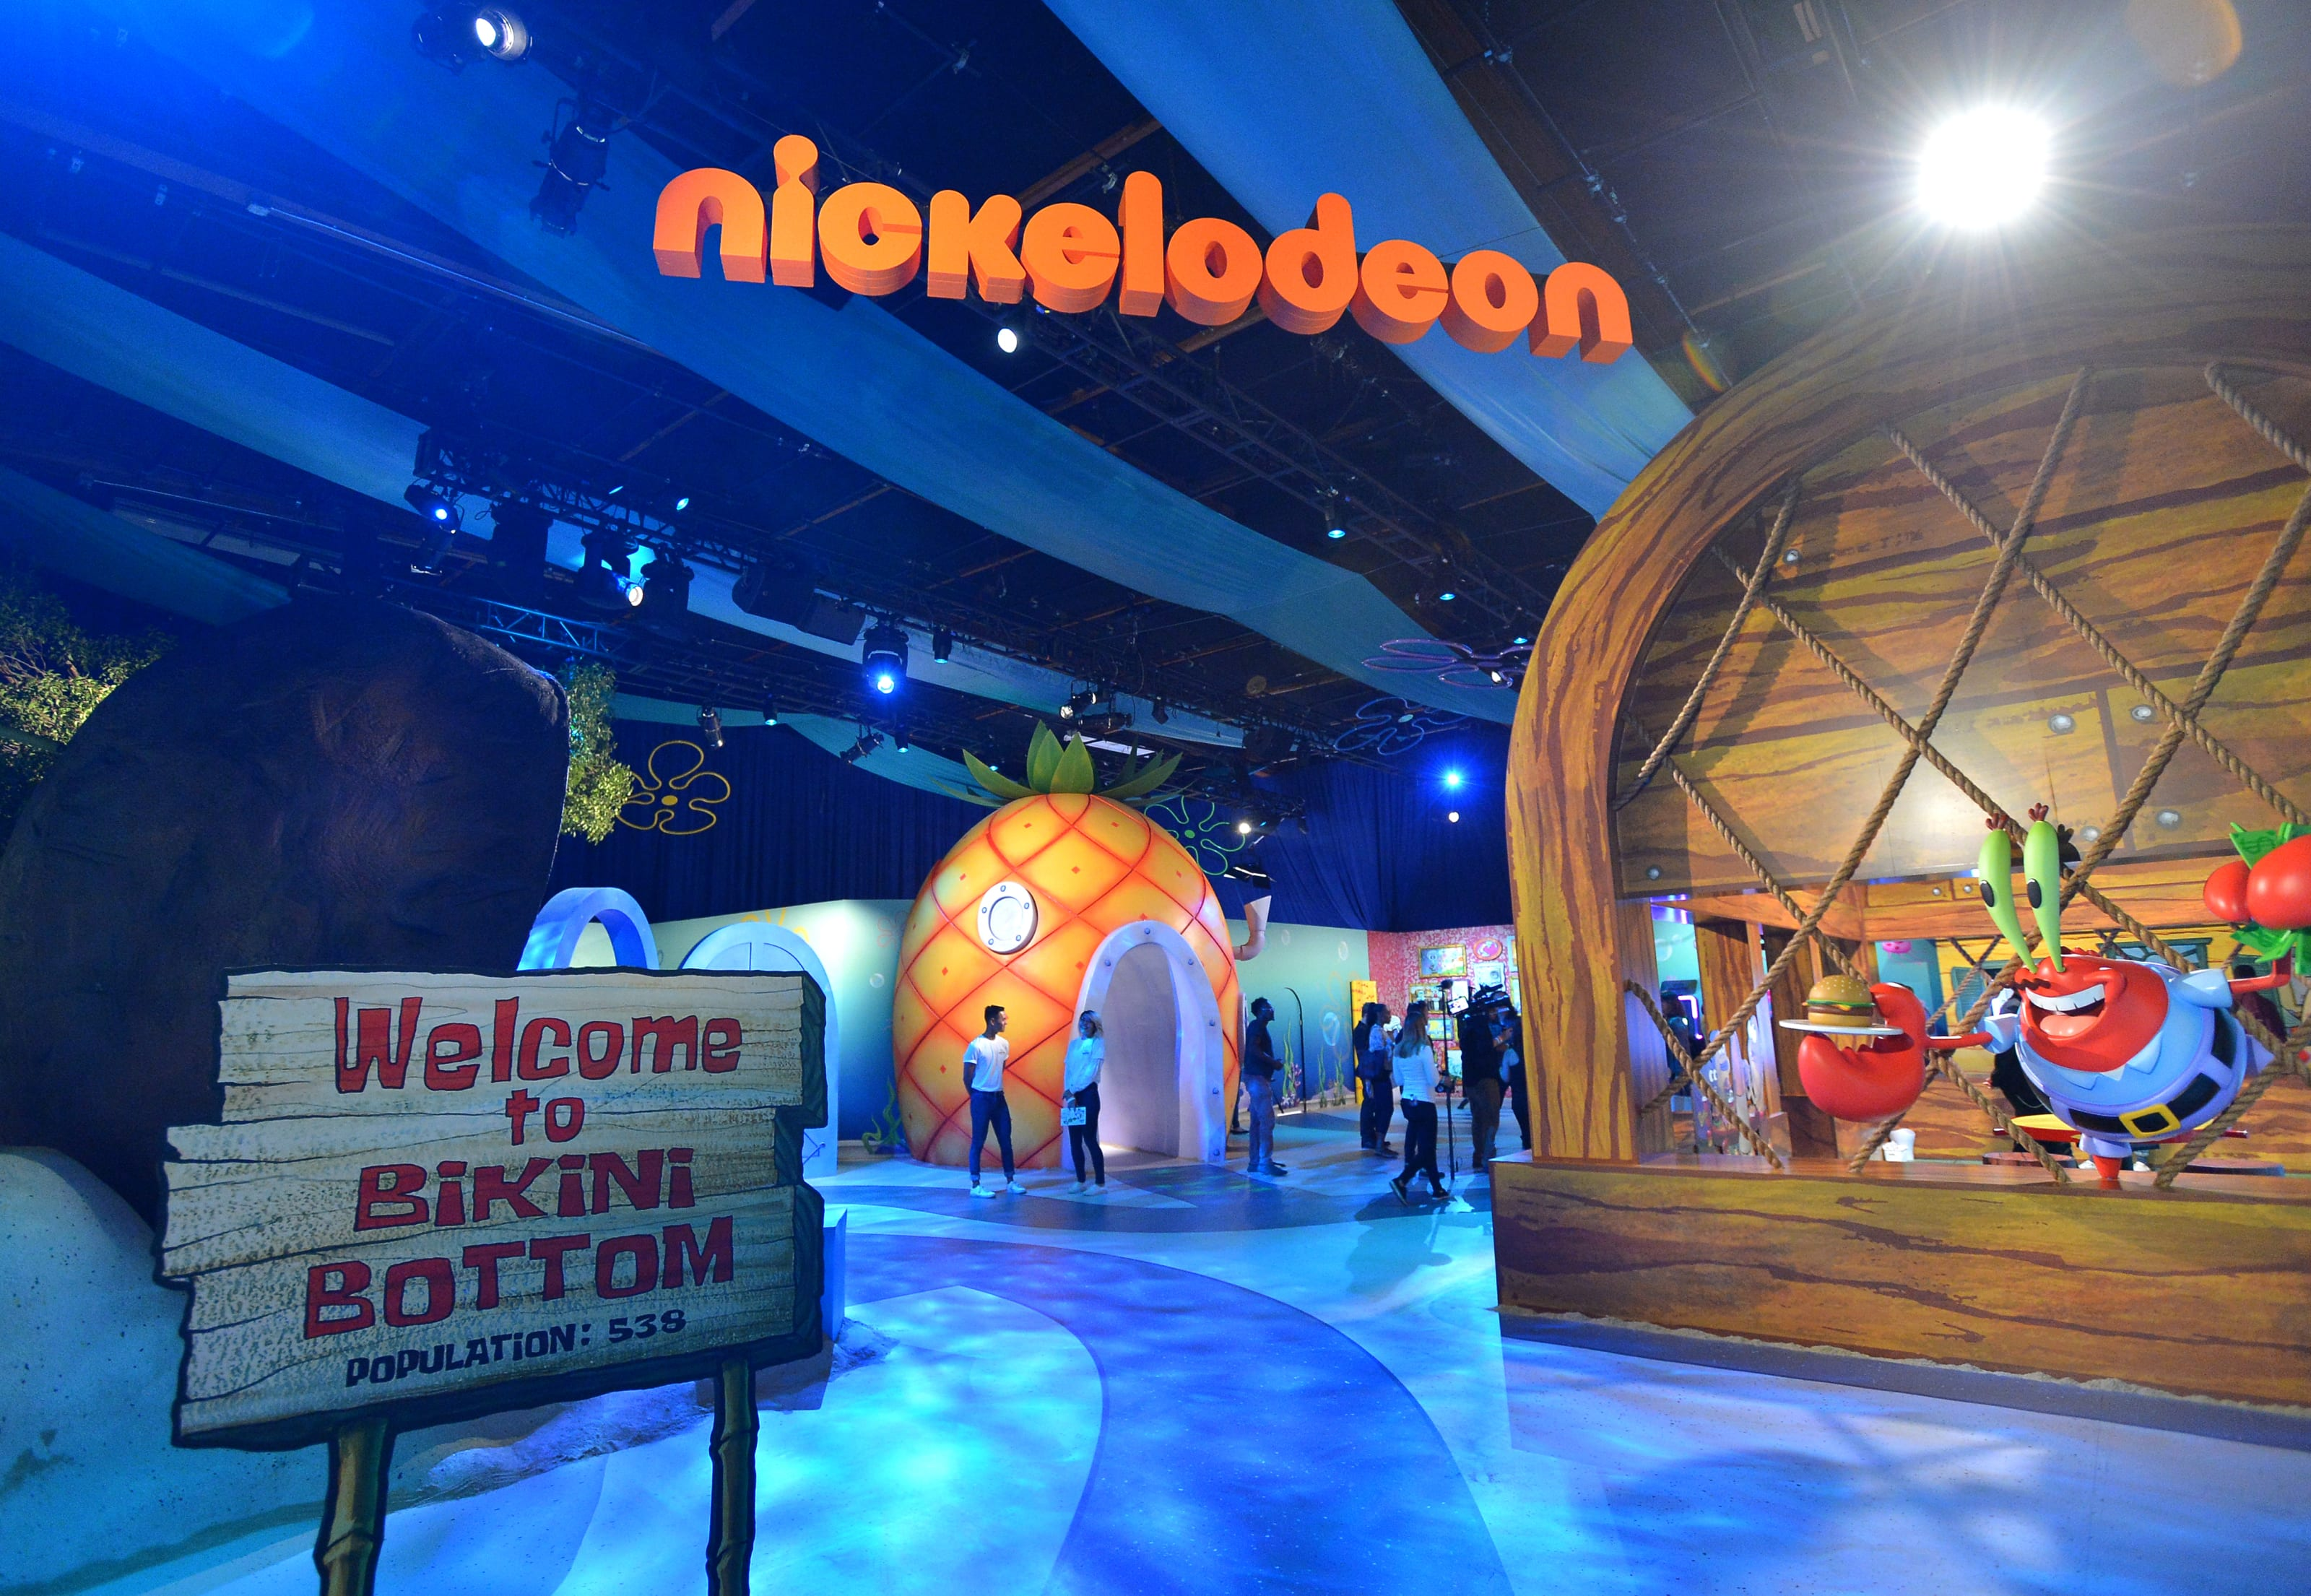 Chicago Bears, Nickelodeon